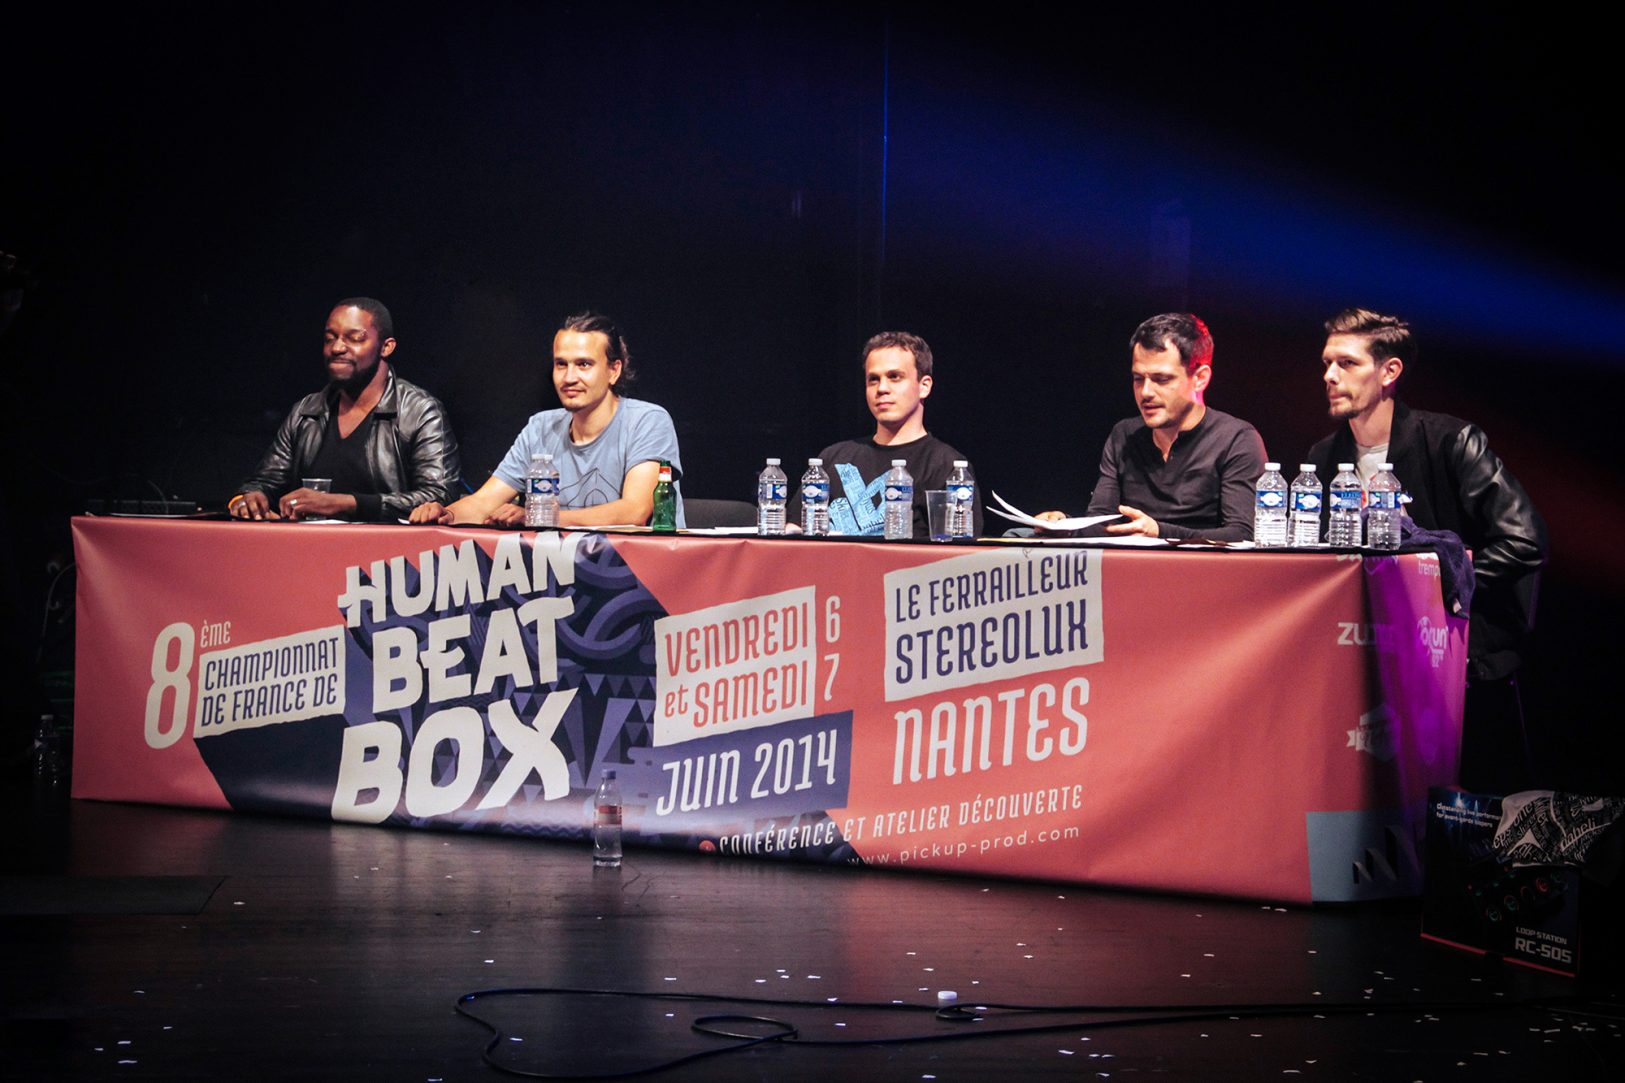 beatbox france 14 Stereolux HD 28